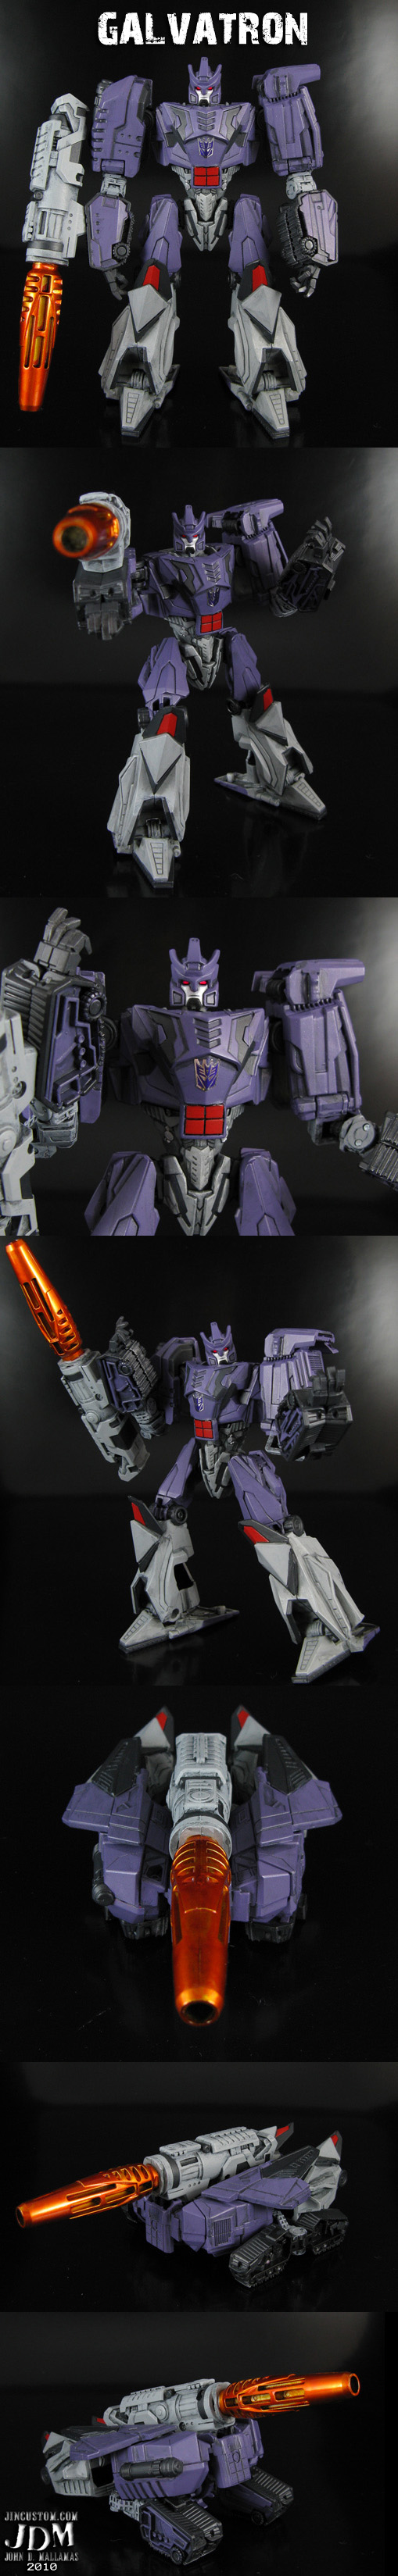 Galvatron Transformers